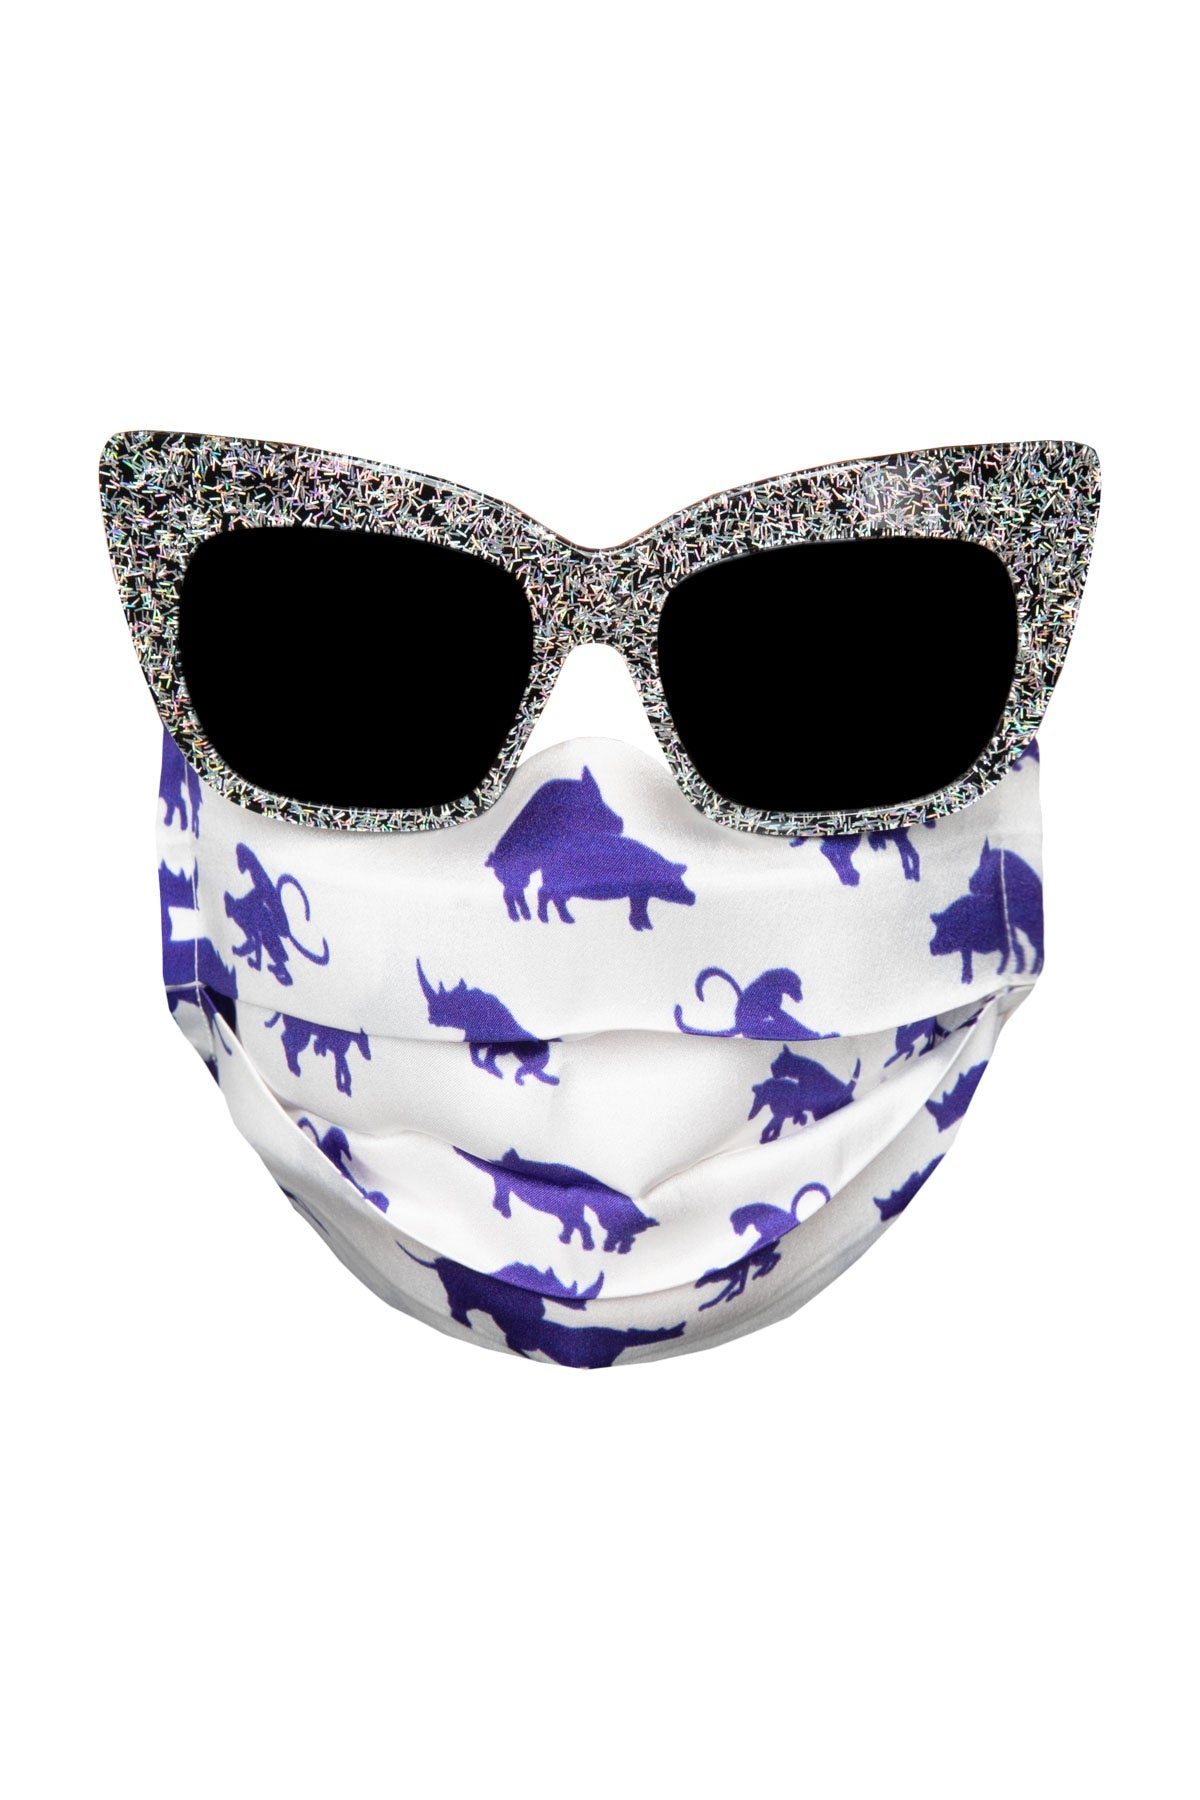 Silk Face Mask - White & Blue Animals